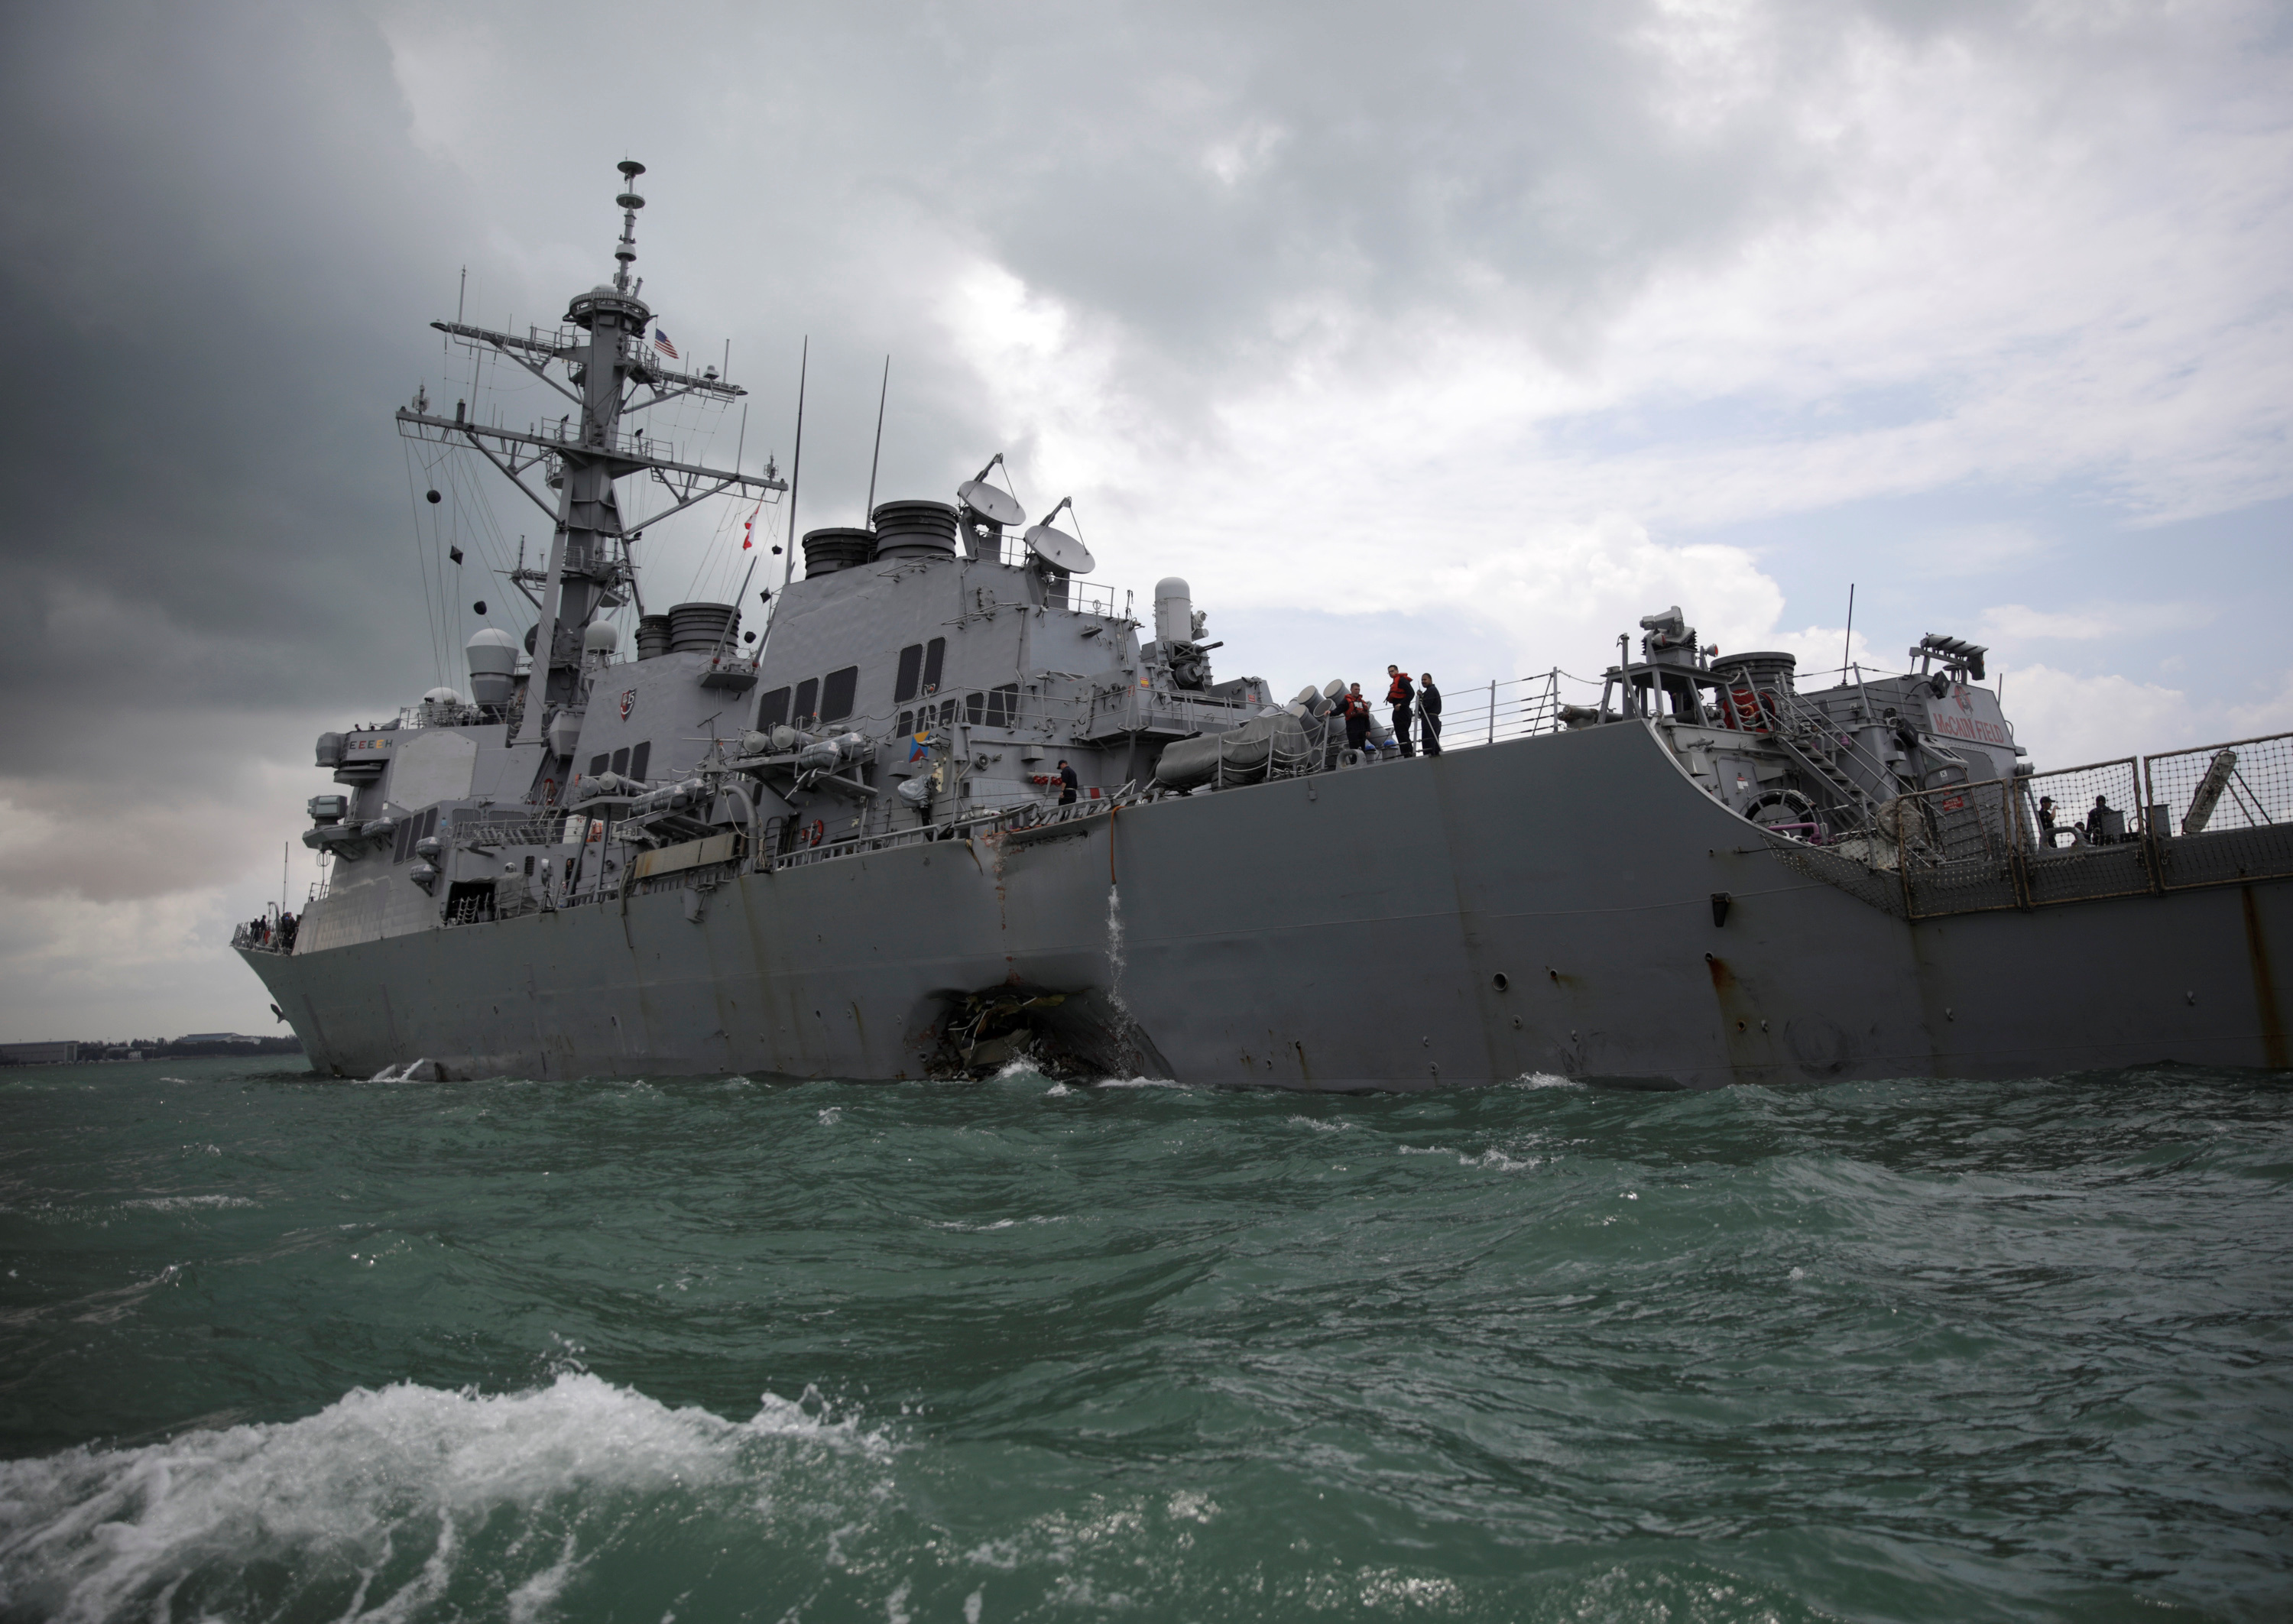 The U.S. Navy guided-missile destroyer USS John S. McCain is seen after a collision, listing and with a huge hole at the waterline.